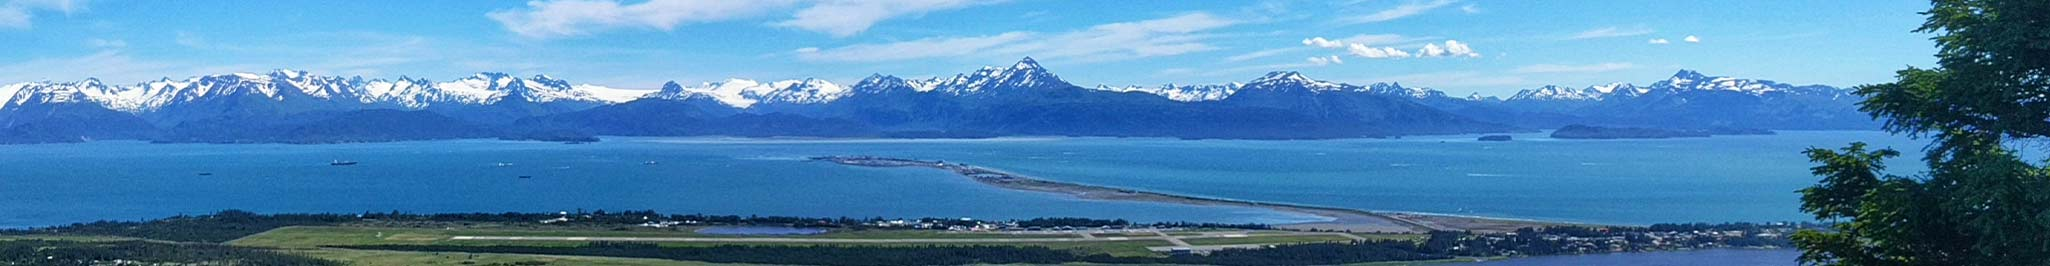 The Homer Spit in Alaska